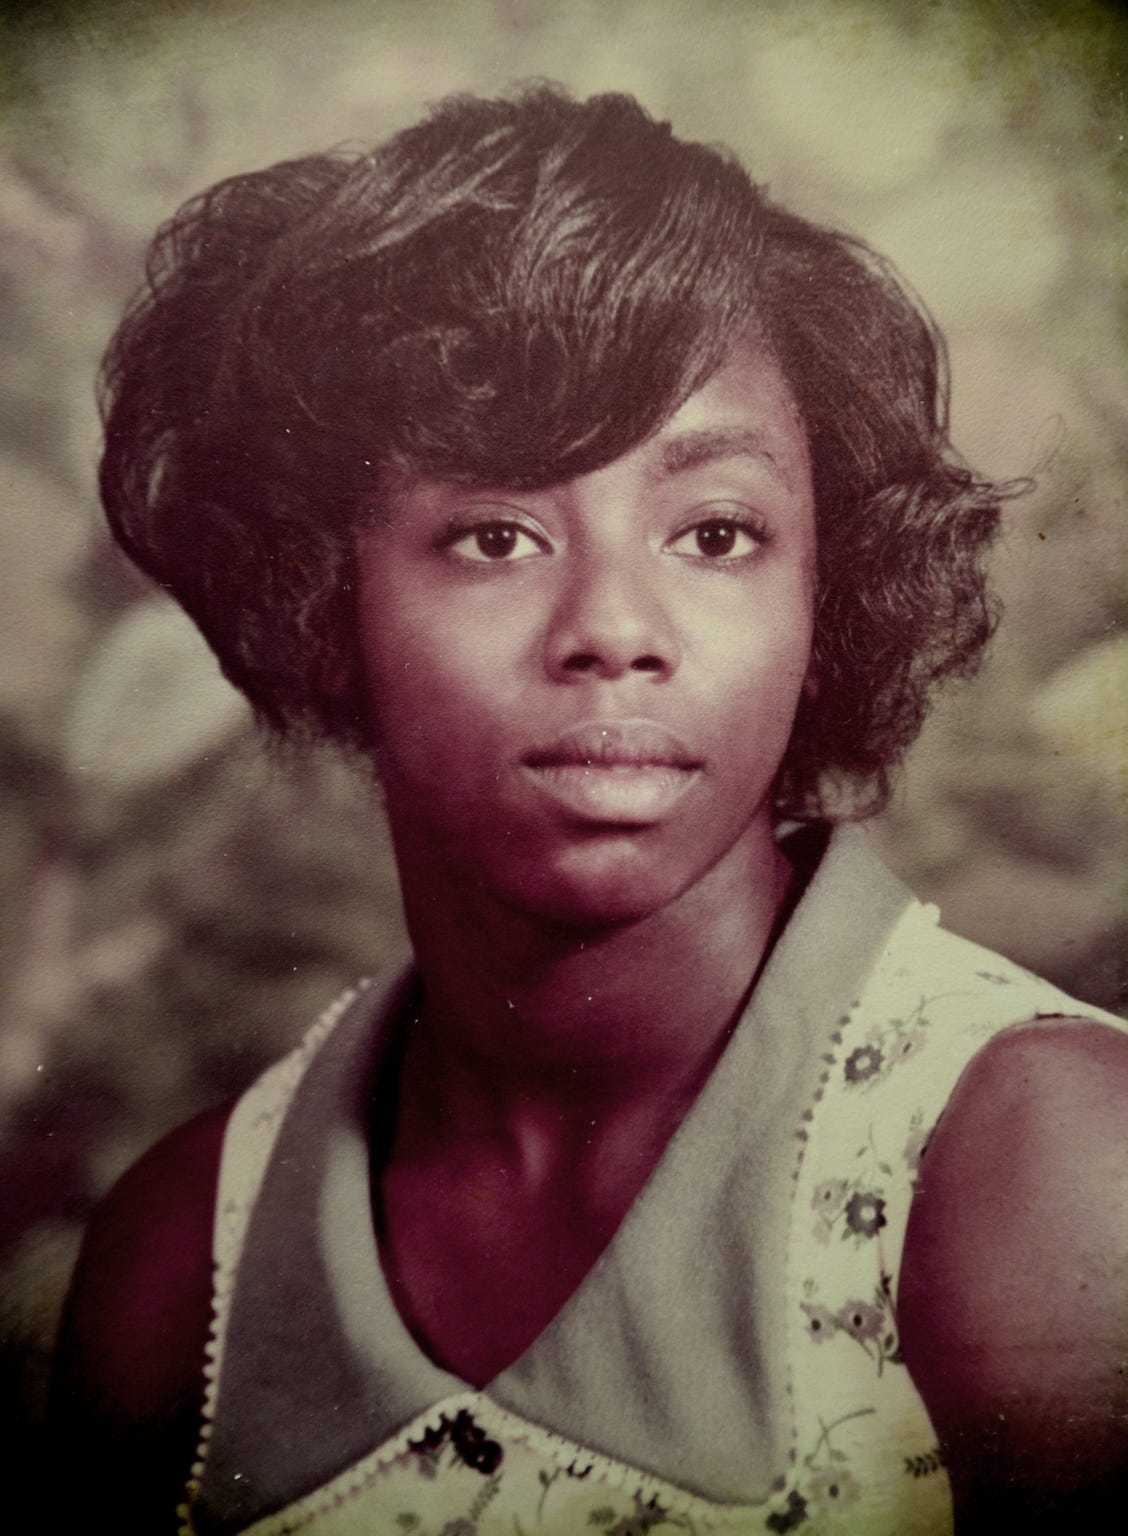 Pictured is an undated photo of Juanita Jones.